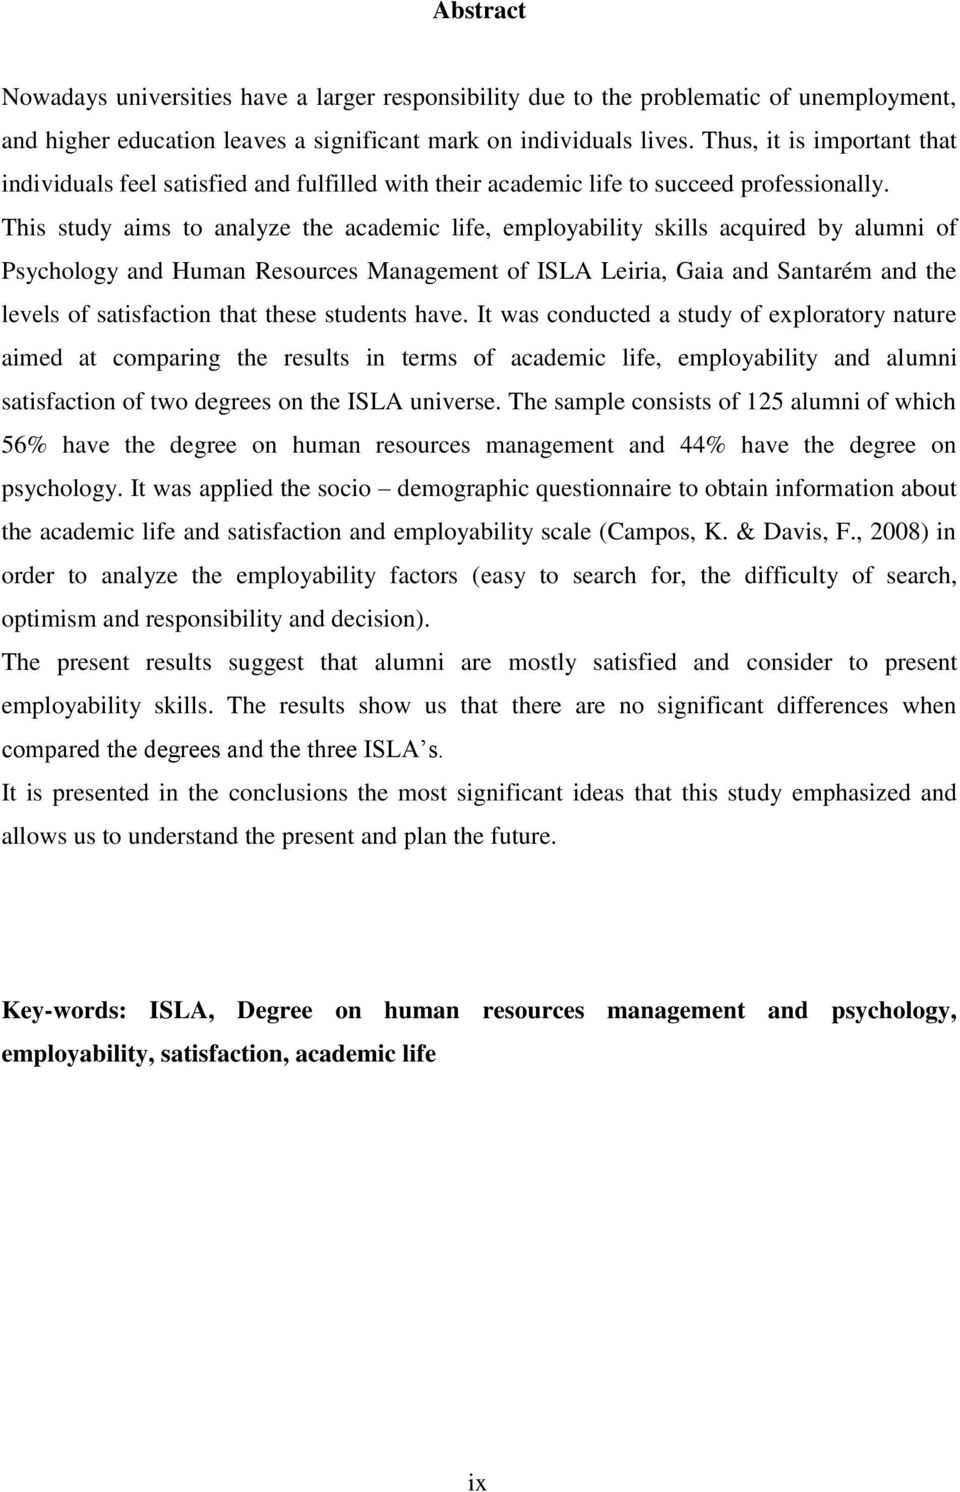 This study aims to analyze the academic life, employability skills acquired by alumni of Psychology and Human Resources Management of ISLA Leiria, Gaia and Santarém and the levels of satisfaction